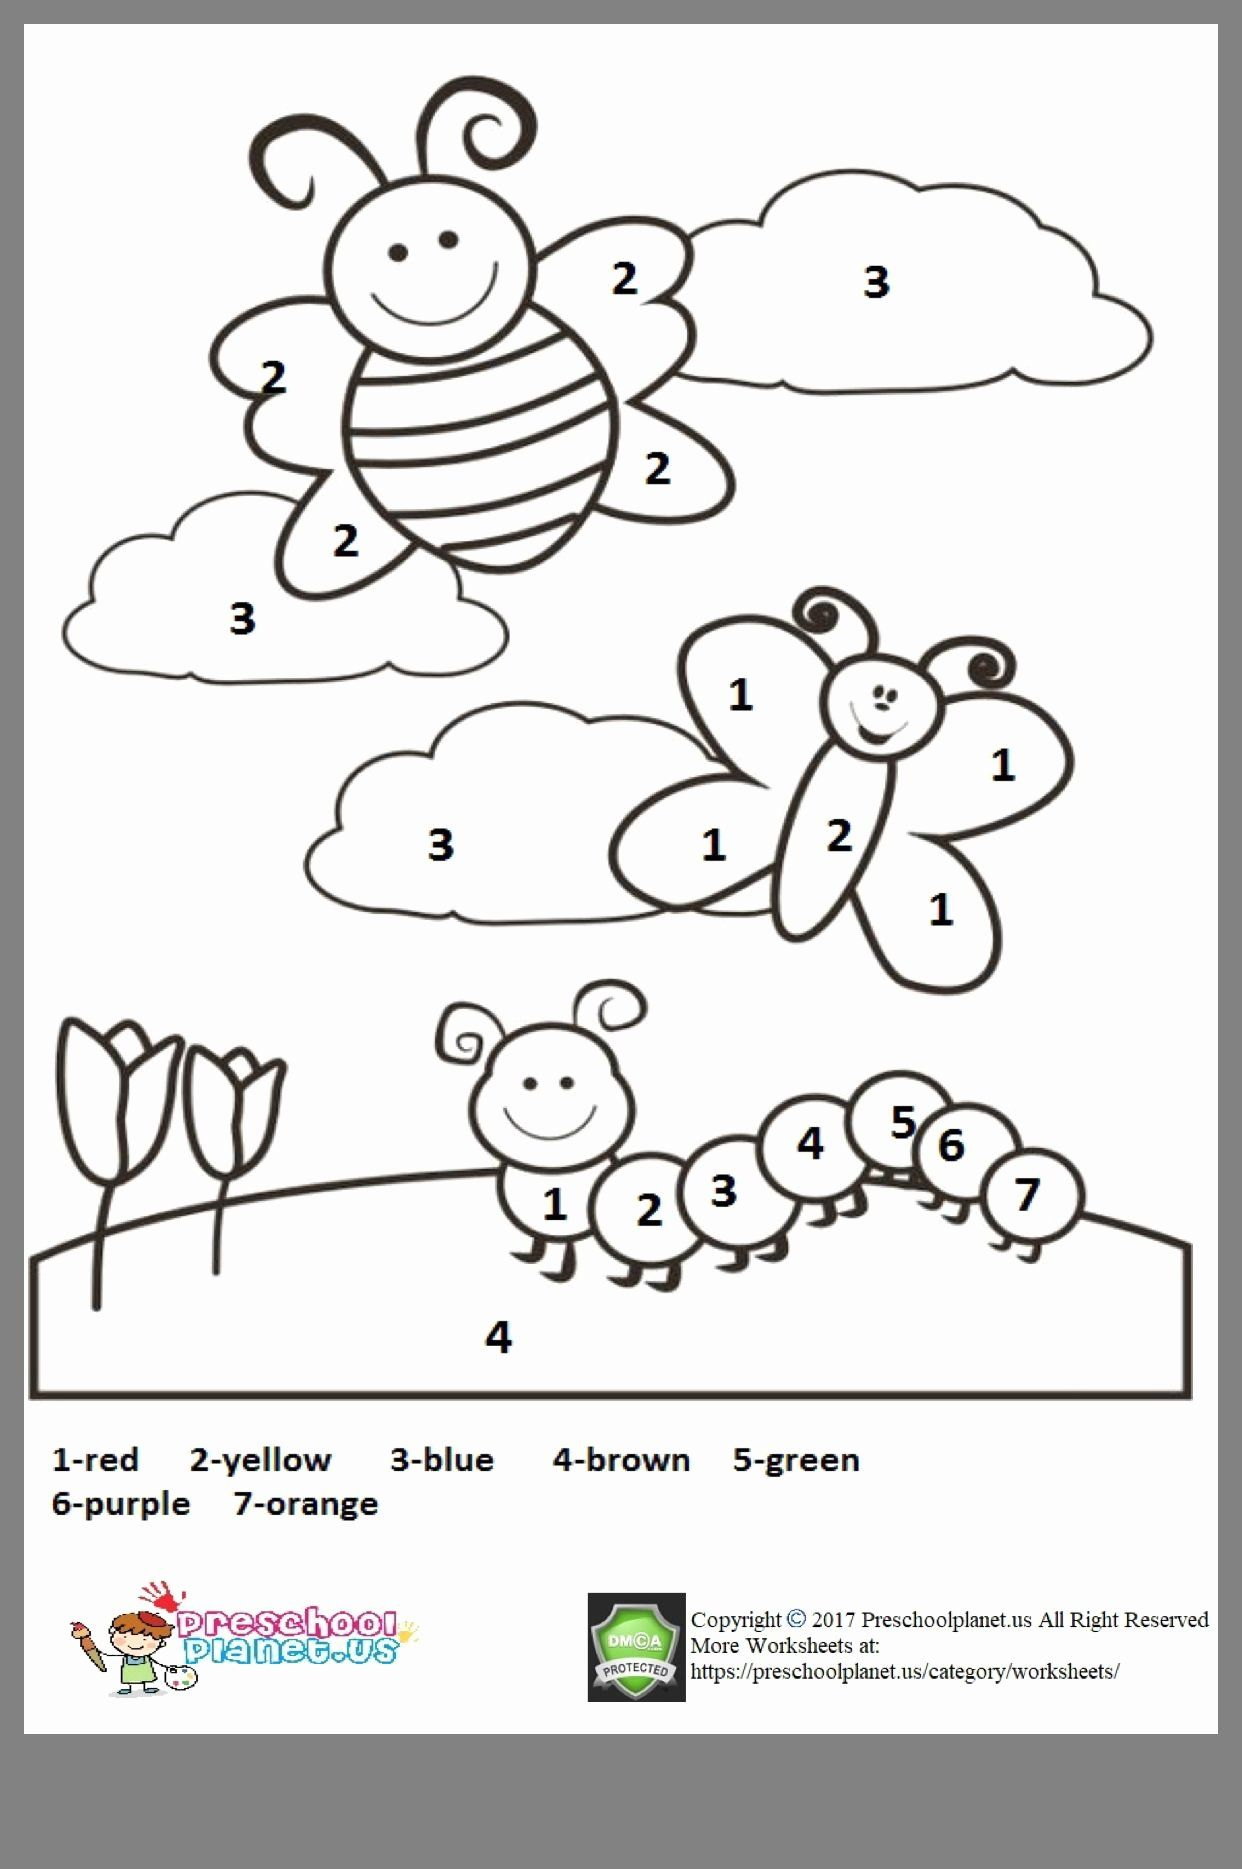 Coloring Pages Animals Hard 2 Luxury Coloring Pages Color